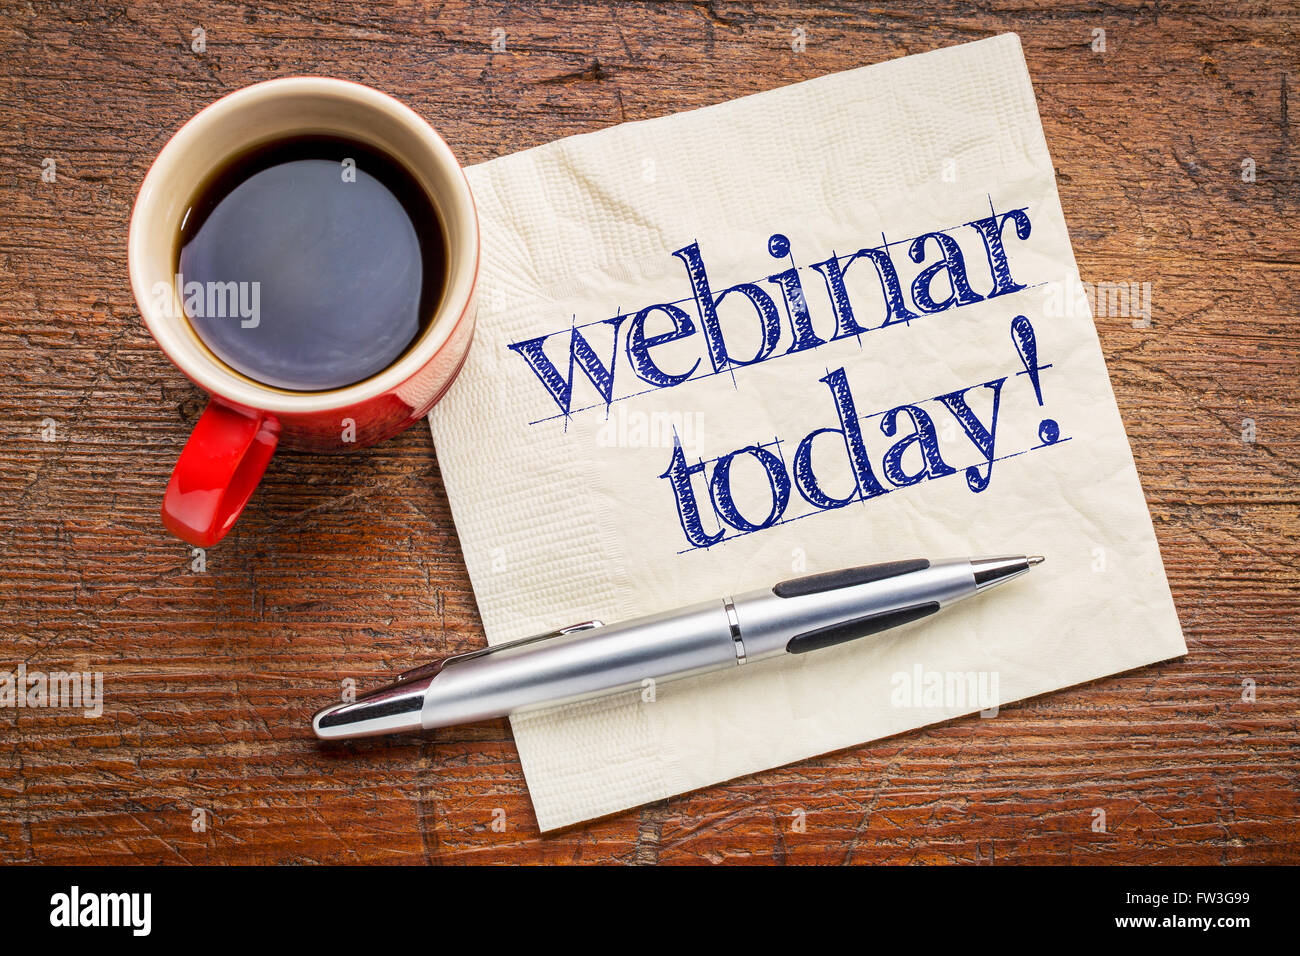 webinar today reminder - handwriting on a napkin with cup[ of coffee - Stock Image